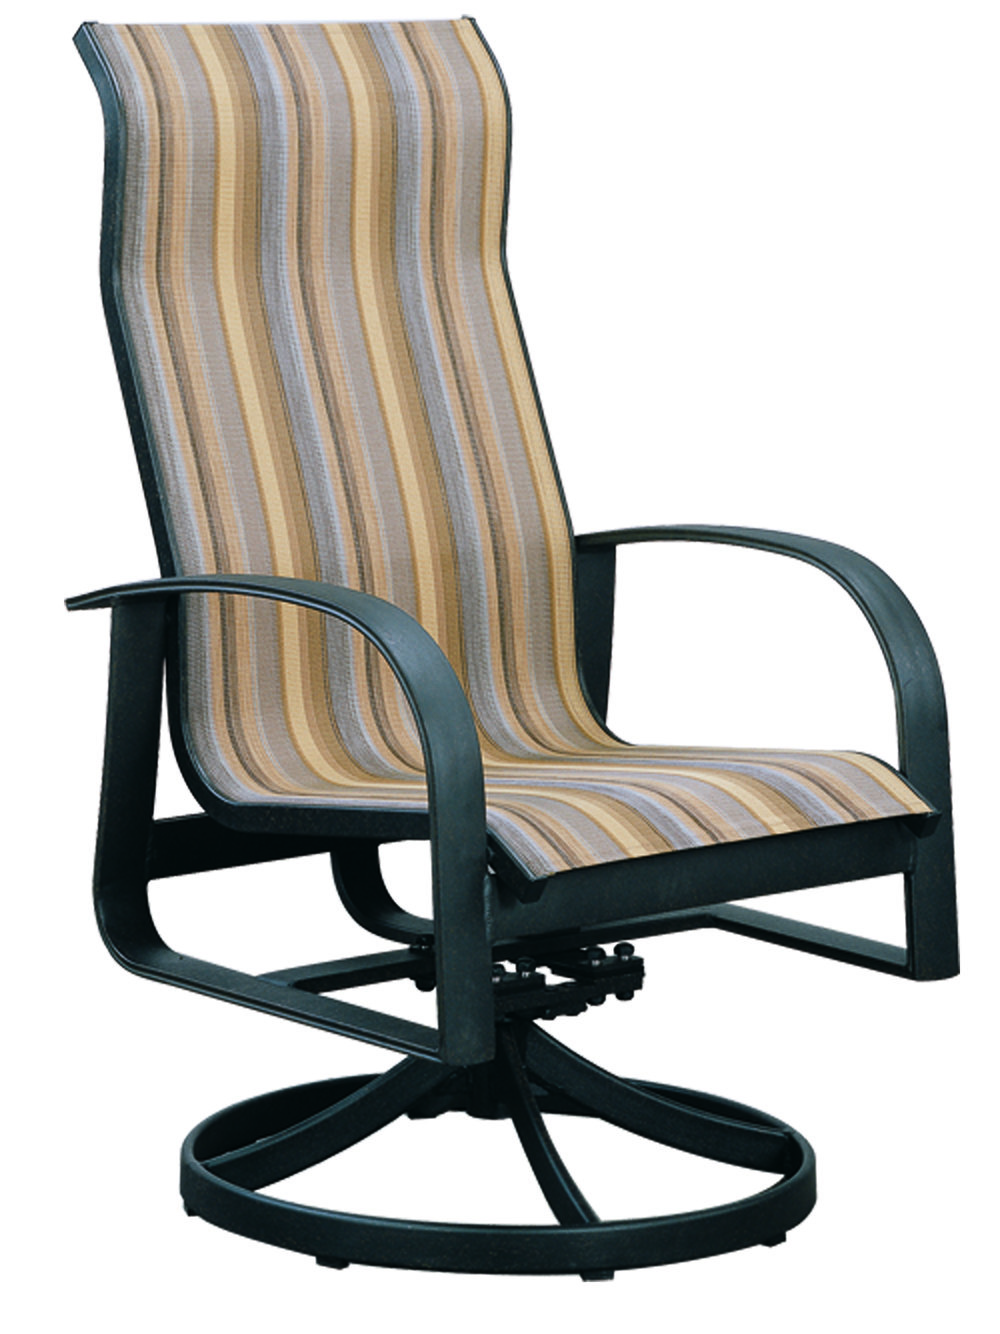 971023H Hermosa HB dining Swivel Rocker   25.4 x 29.5 x 42